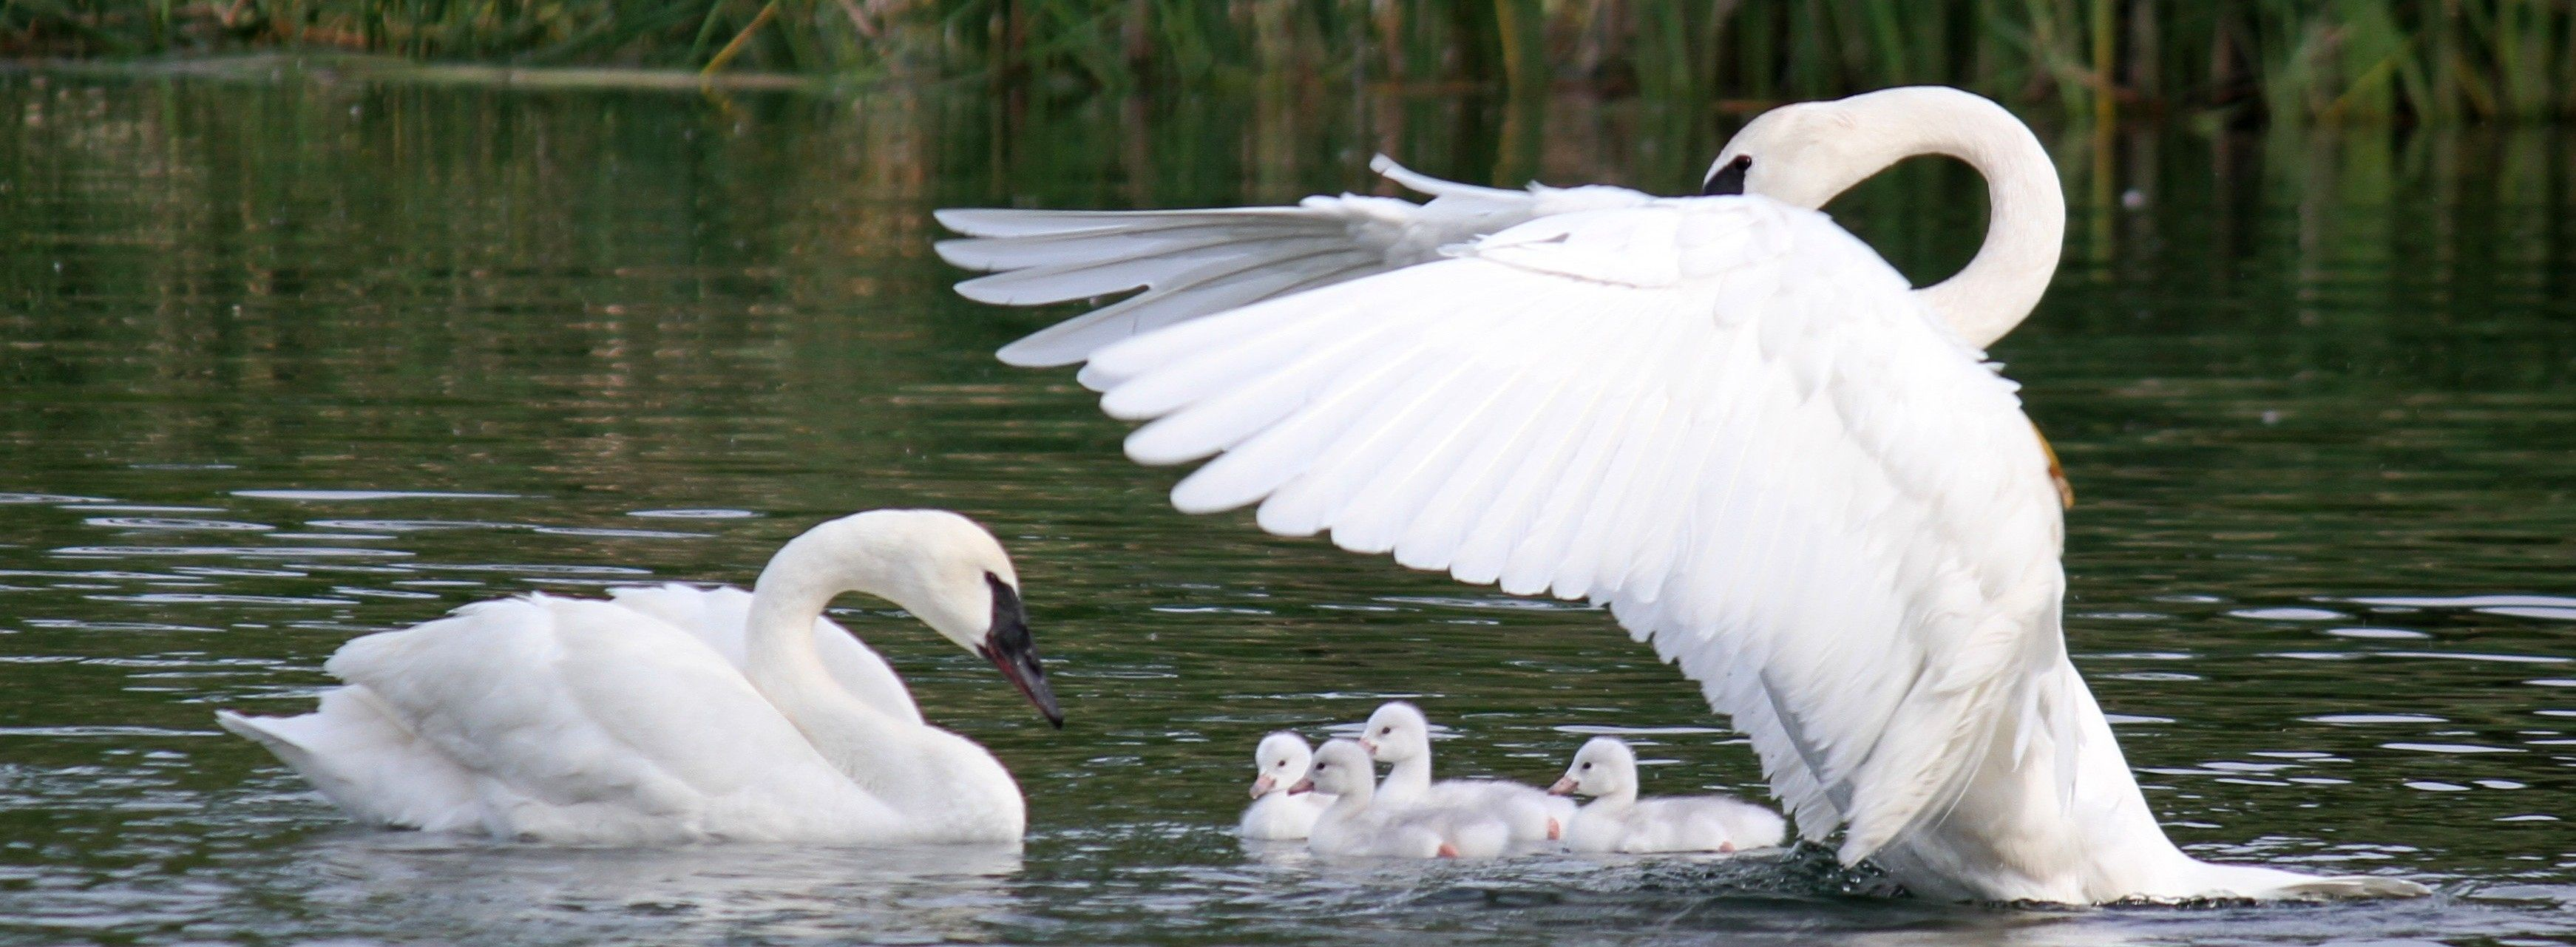 The Trumpeter Swan Society's programs span across North America